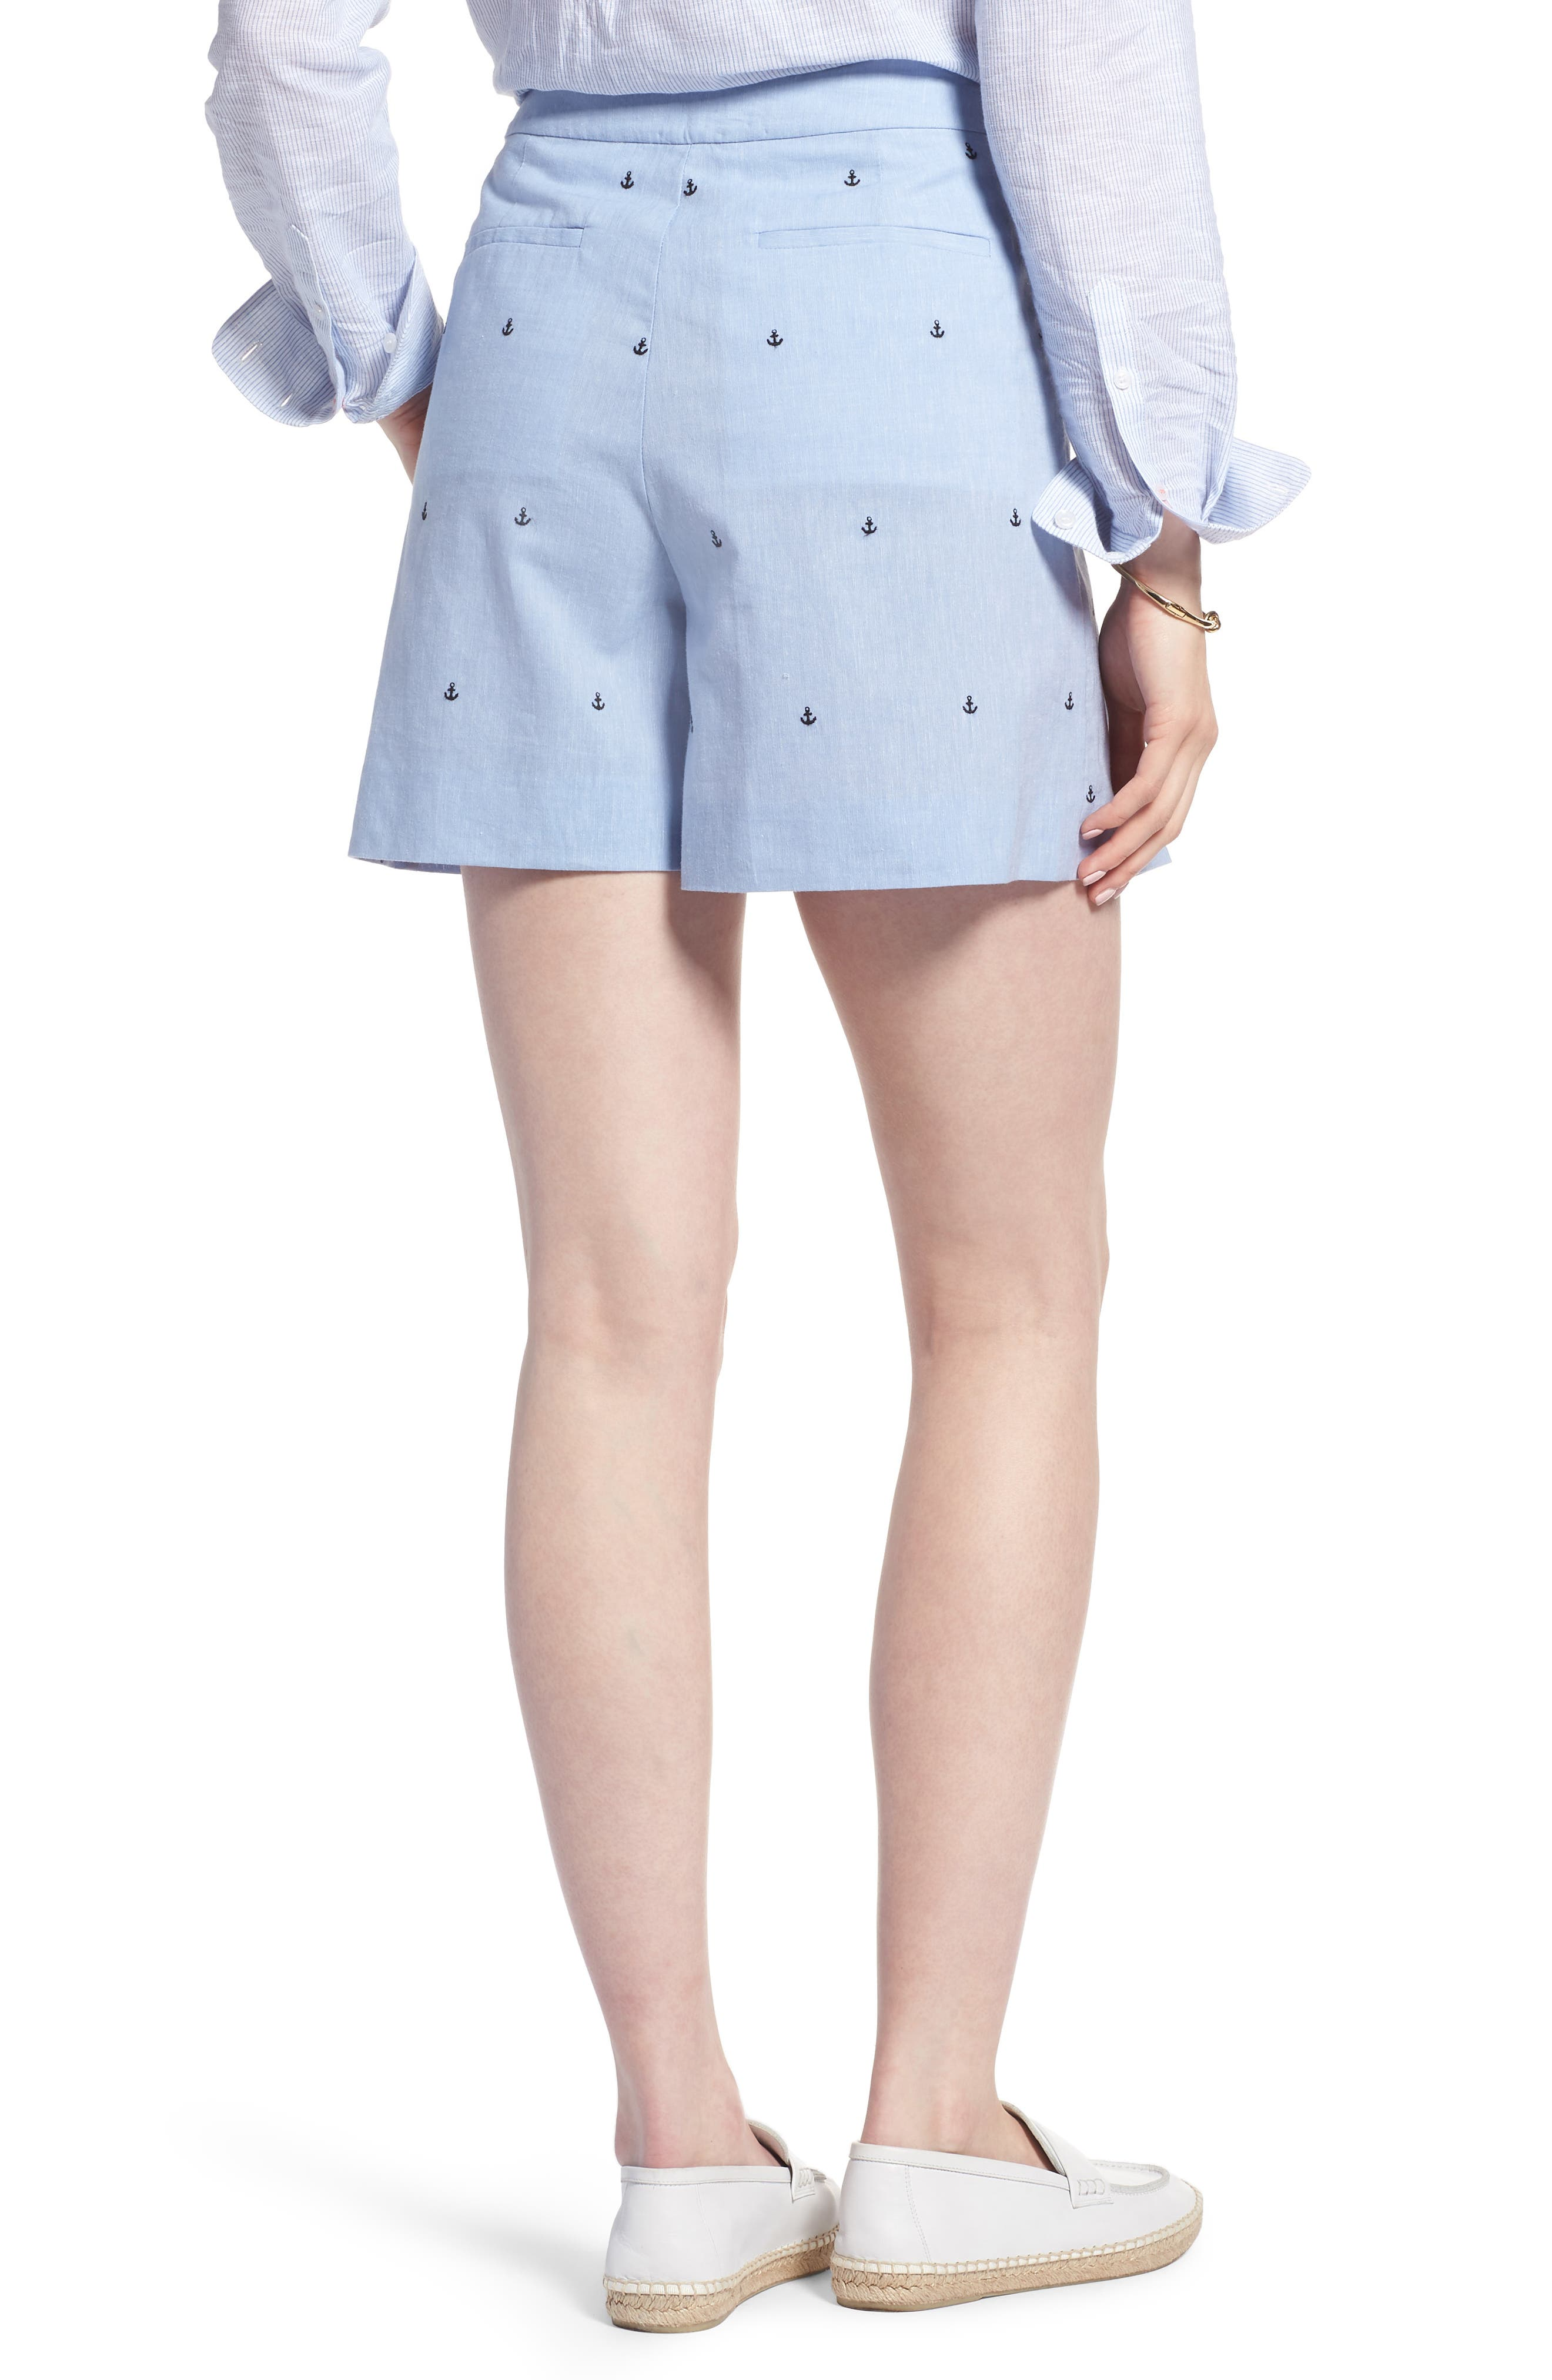 Anchor Embroidery Pleated Cotton Shorts,                             Alternate thumbnail 2, color,                             Chambray Anchor Print